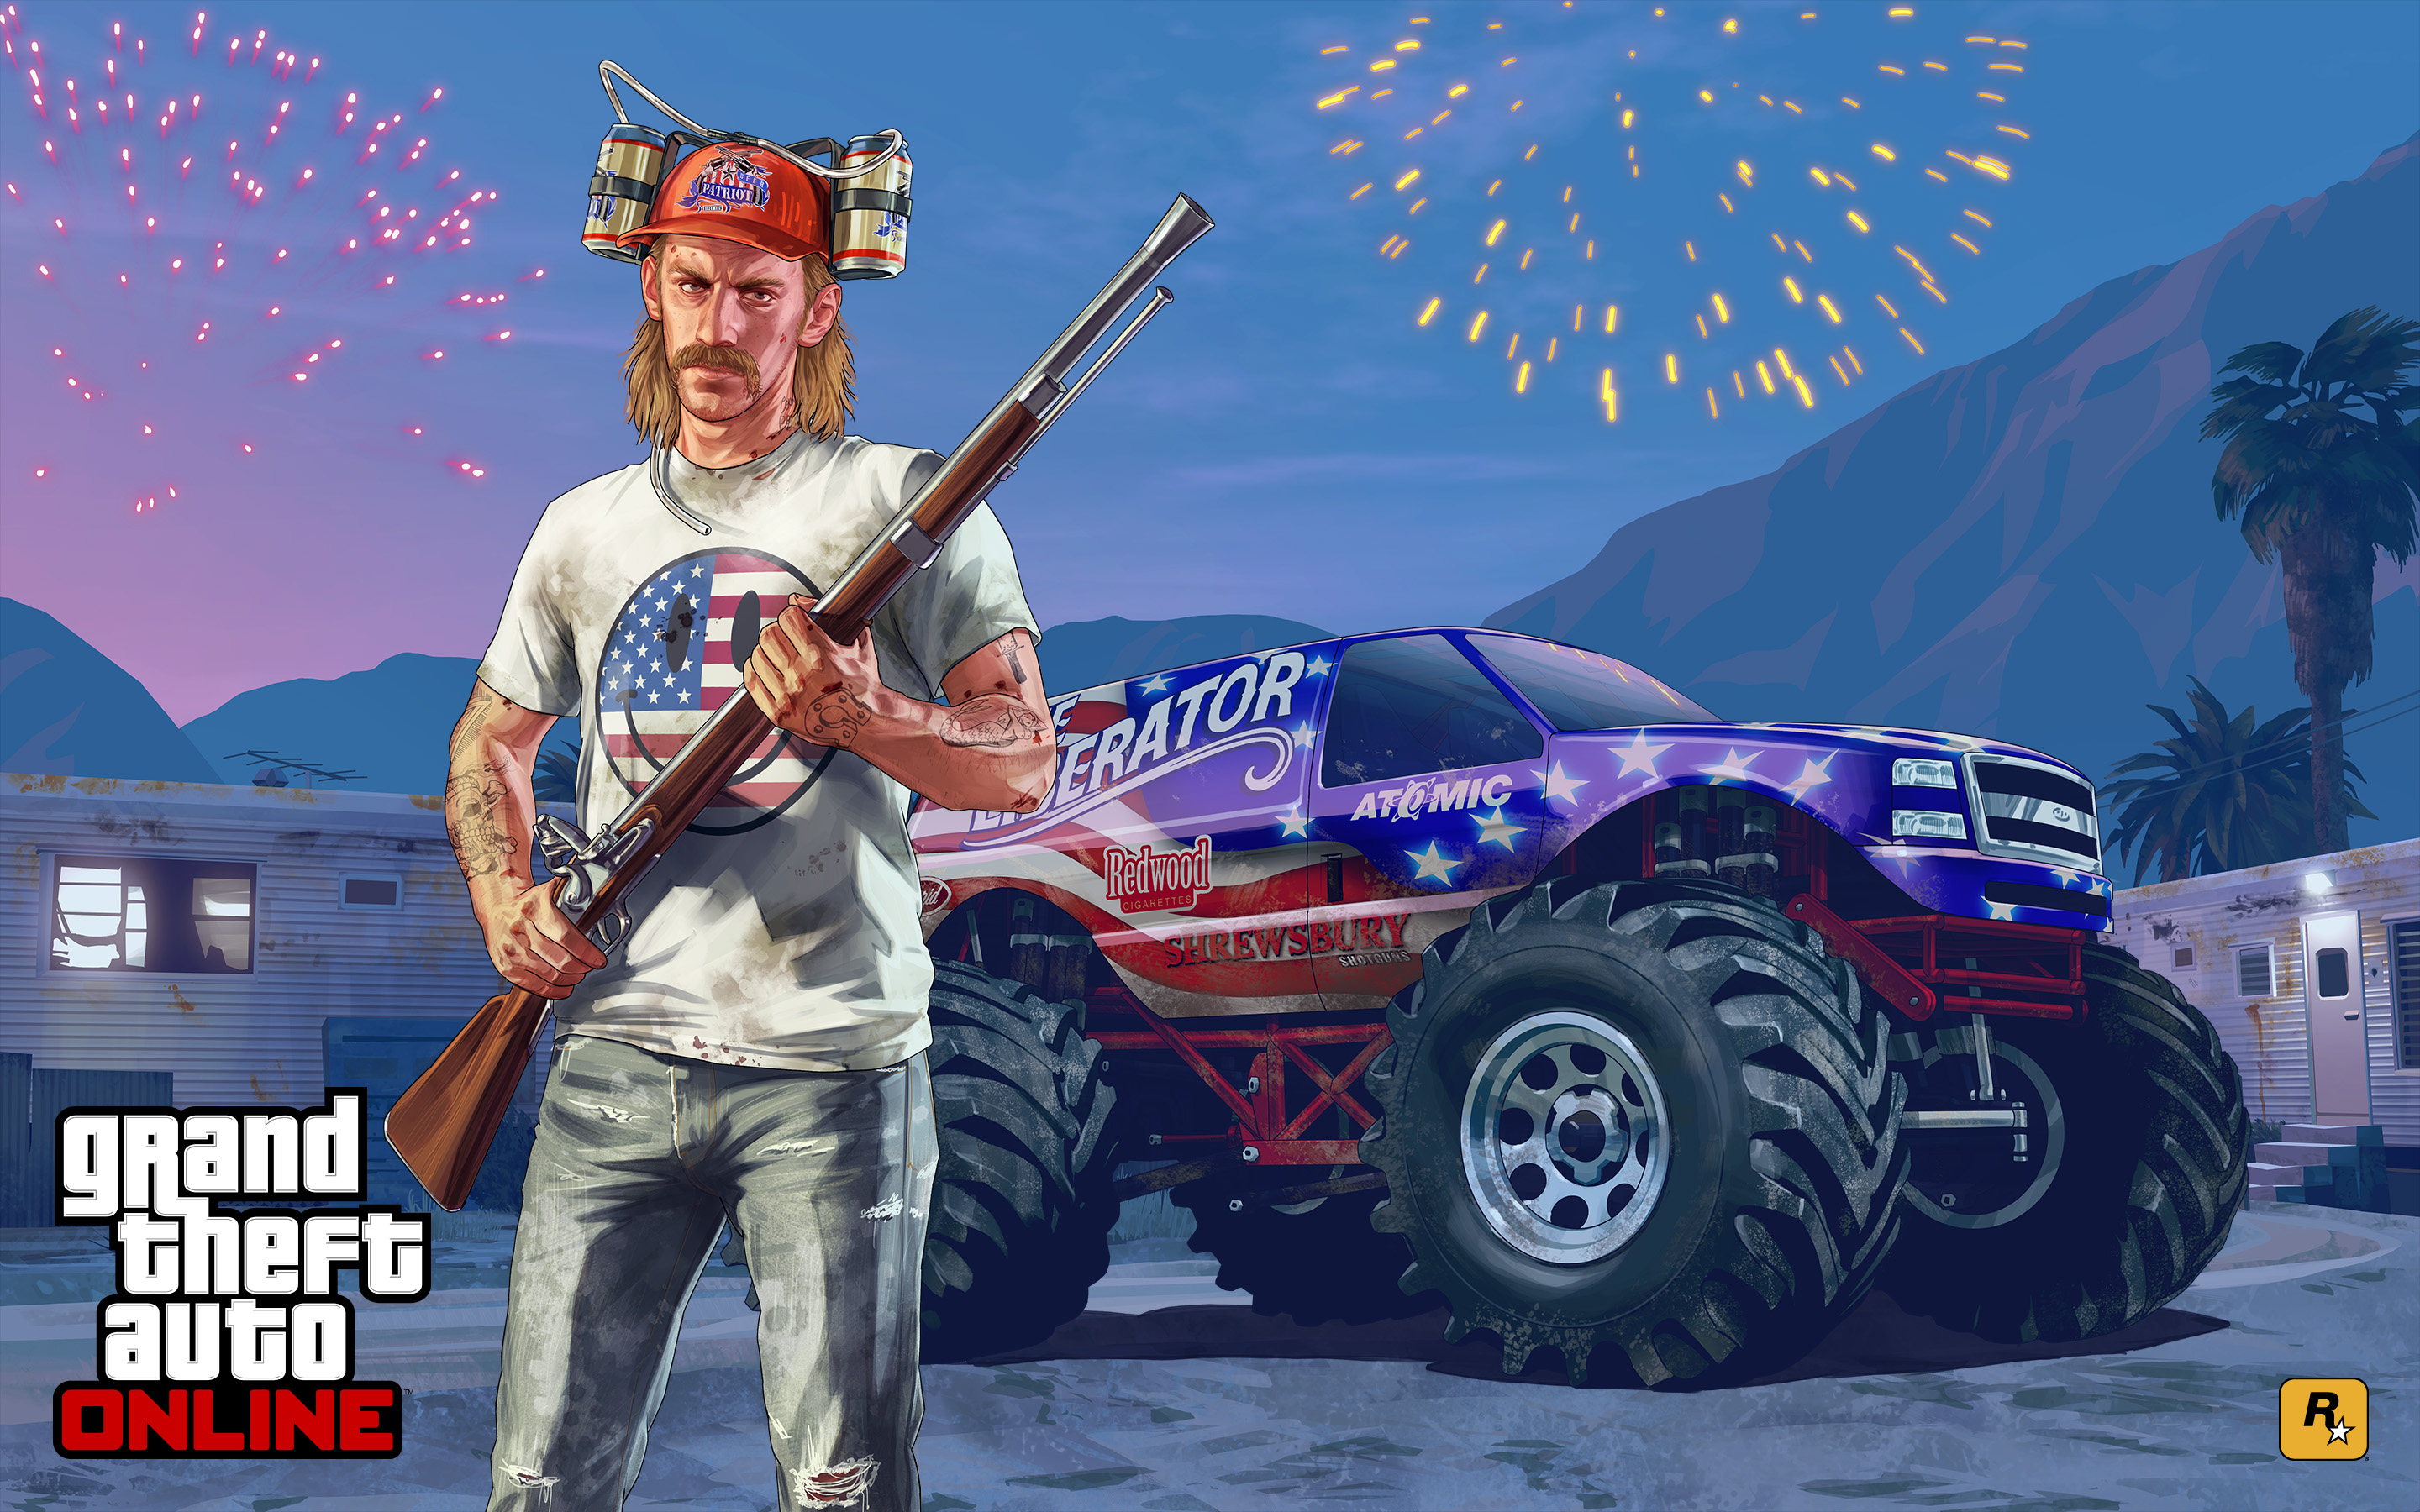 widescreen-gaming-gta-5-1669-online-wallpaper-independence-day-grand